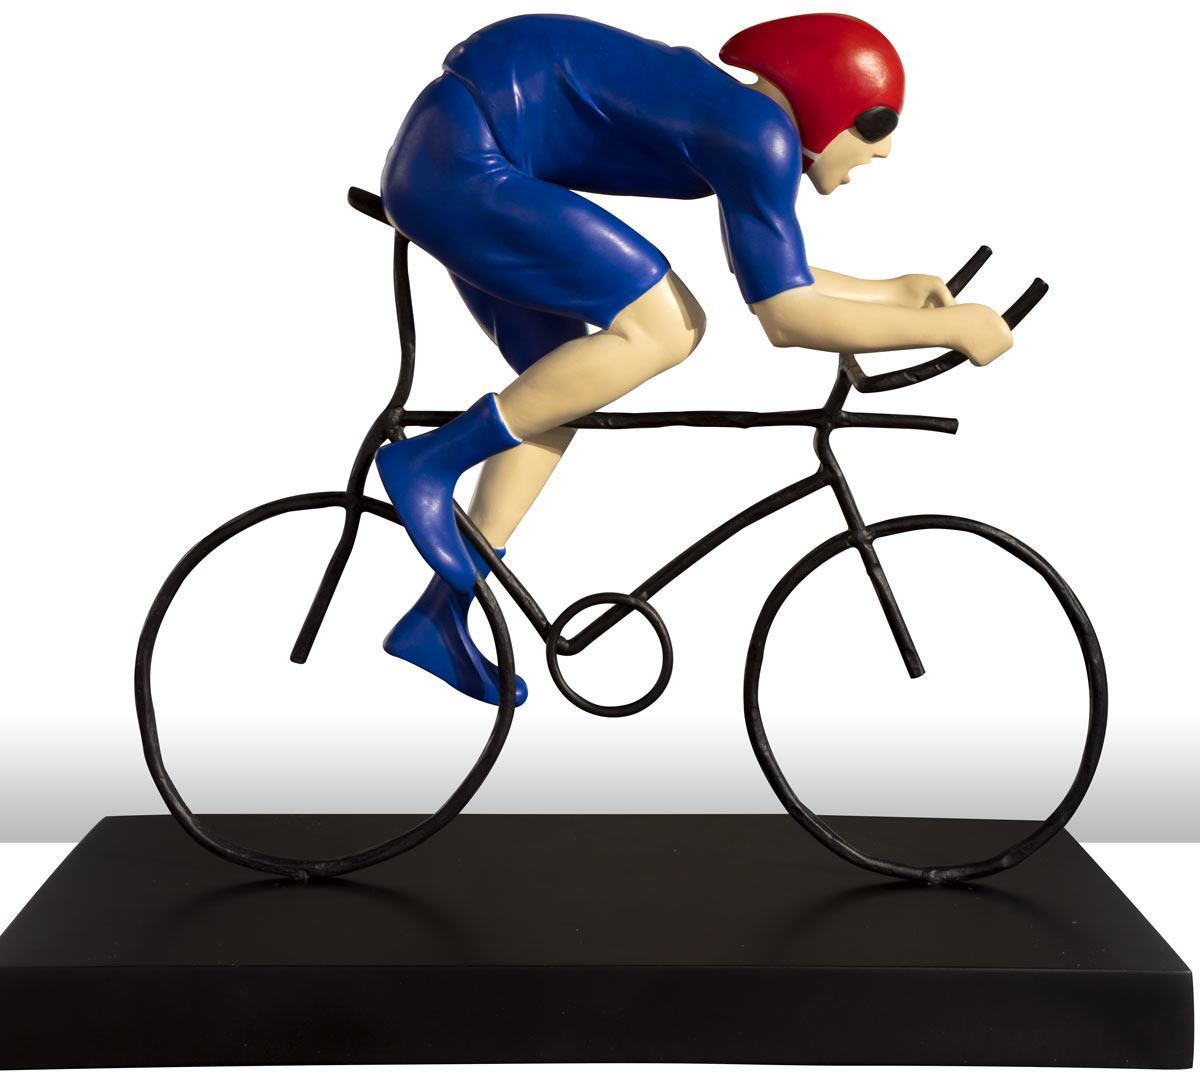 The Fastest - Sculpture Mackenzie Thorpe Loose